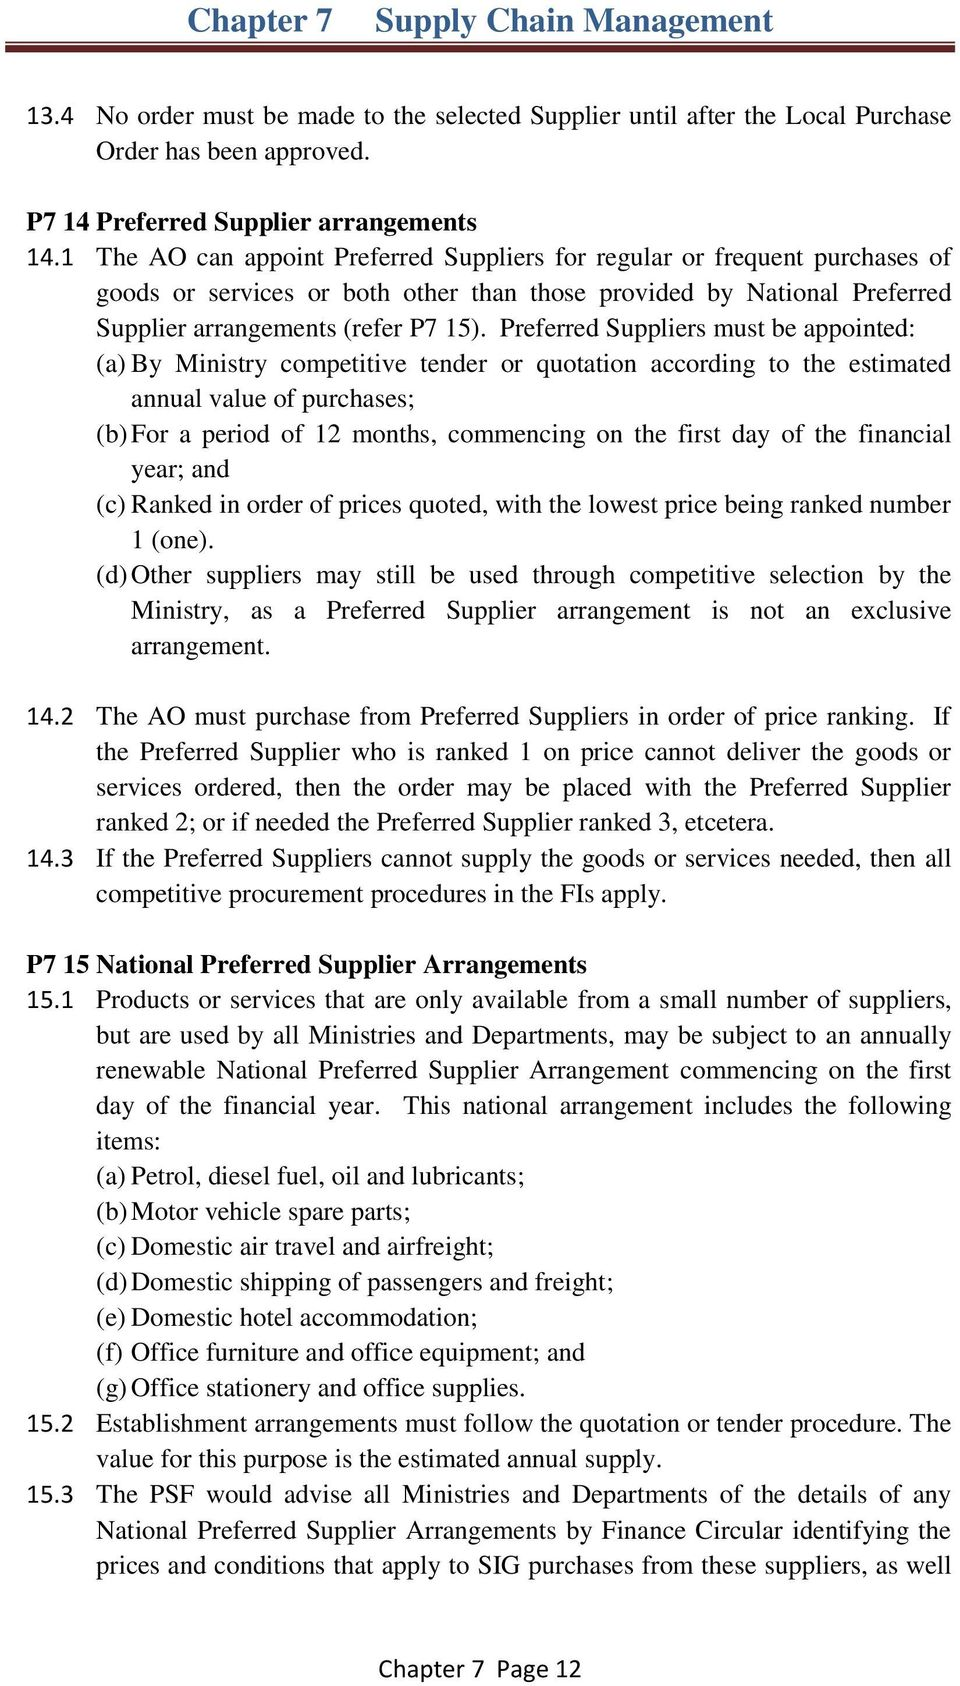 Preferred Suppliers must be appointed: (a) By Ministry competitive tender or quotation according to the estimated annual value of purchases; (b) For a period of 12 months, commencing on the first day